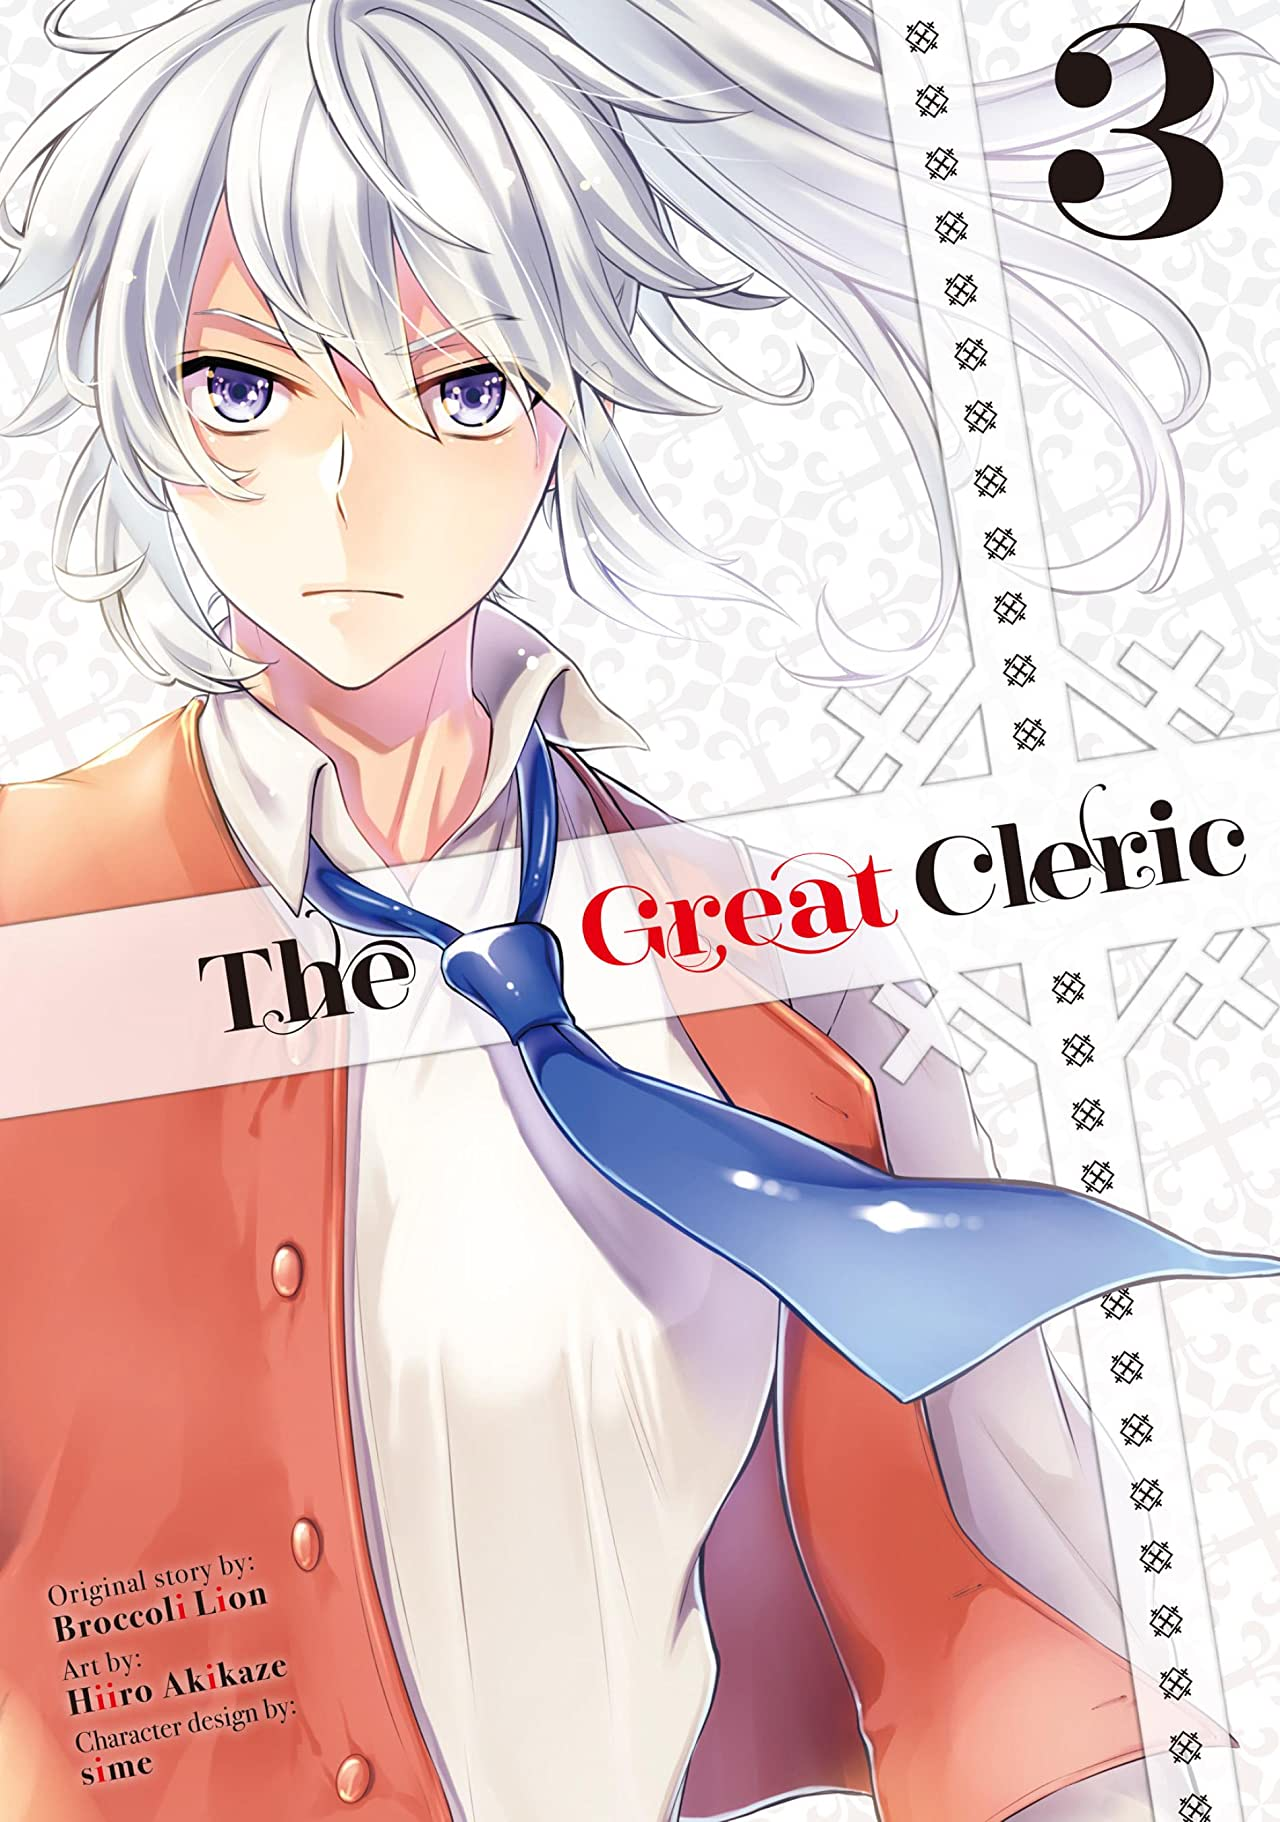 The Great Cleric Vol. 3